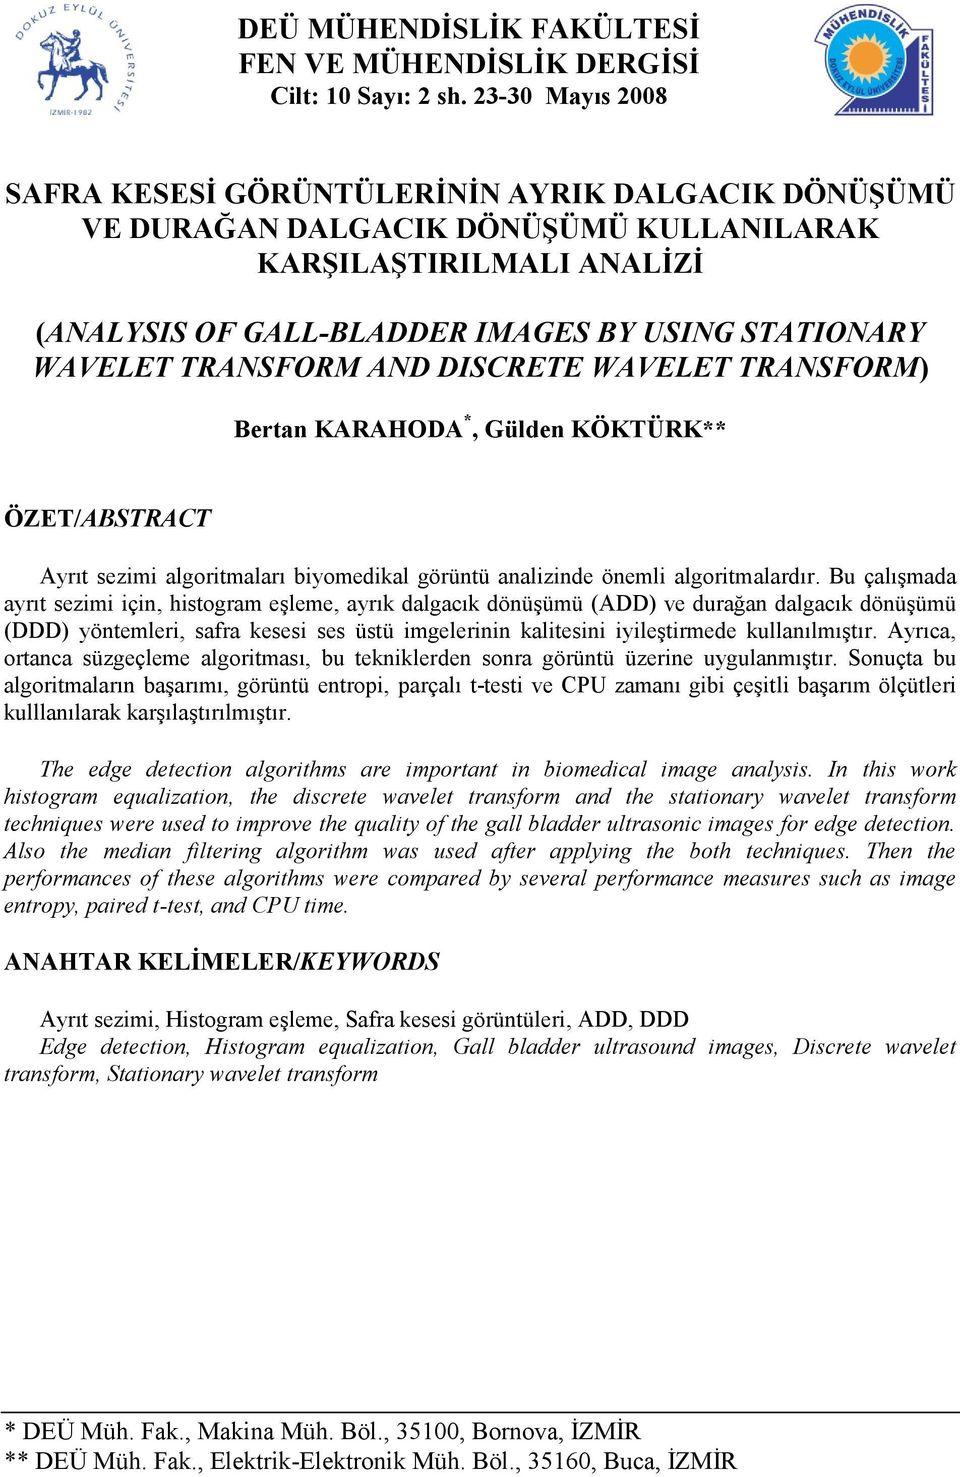 TRANSFORM AND DISCRETE WAVELET TRANSFORM) Bertan KARAHODA *, Gülden KÖKTÜRK** ÖZET/ABSTRACT Ayrıt sezimi algoritmaları biyomedikal görüntü analizinde önemli algoritmalardır.